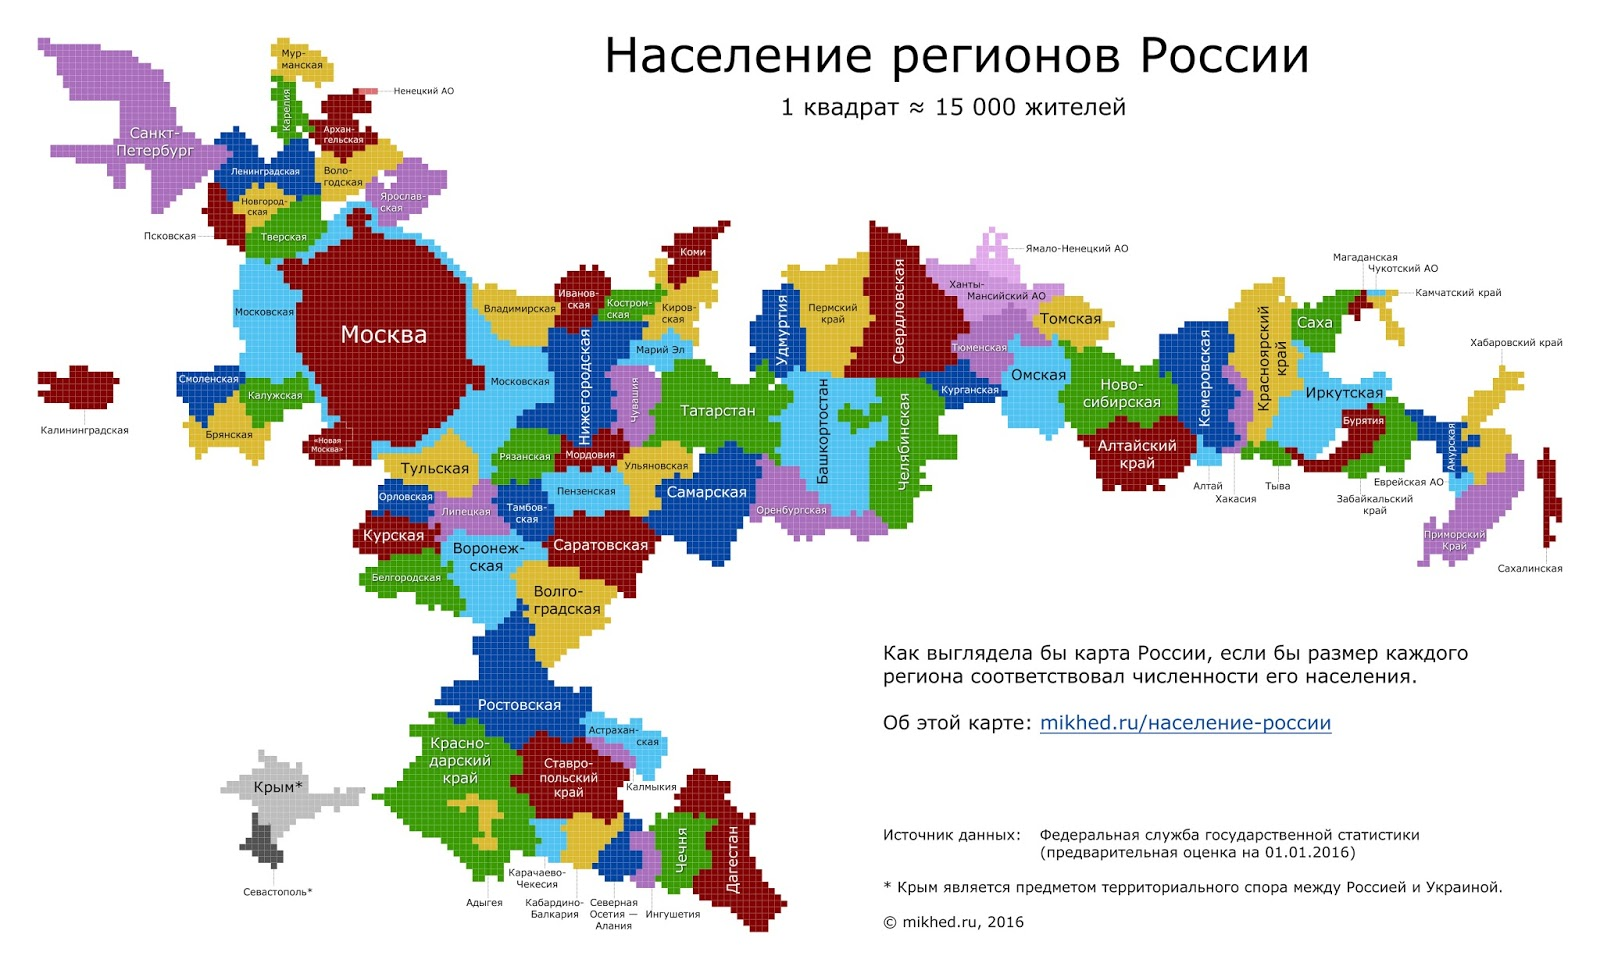 Population cartogram of the Russia regions